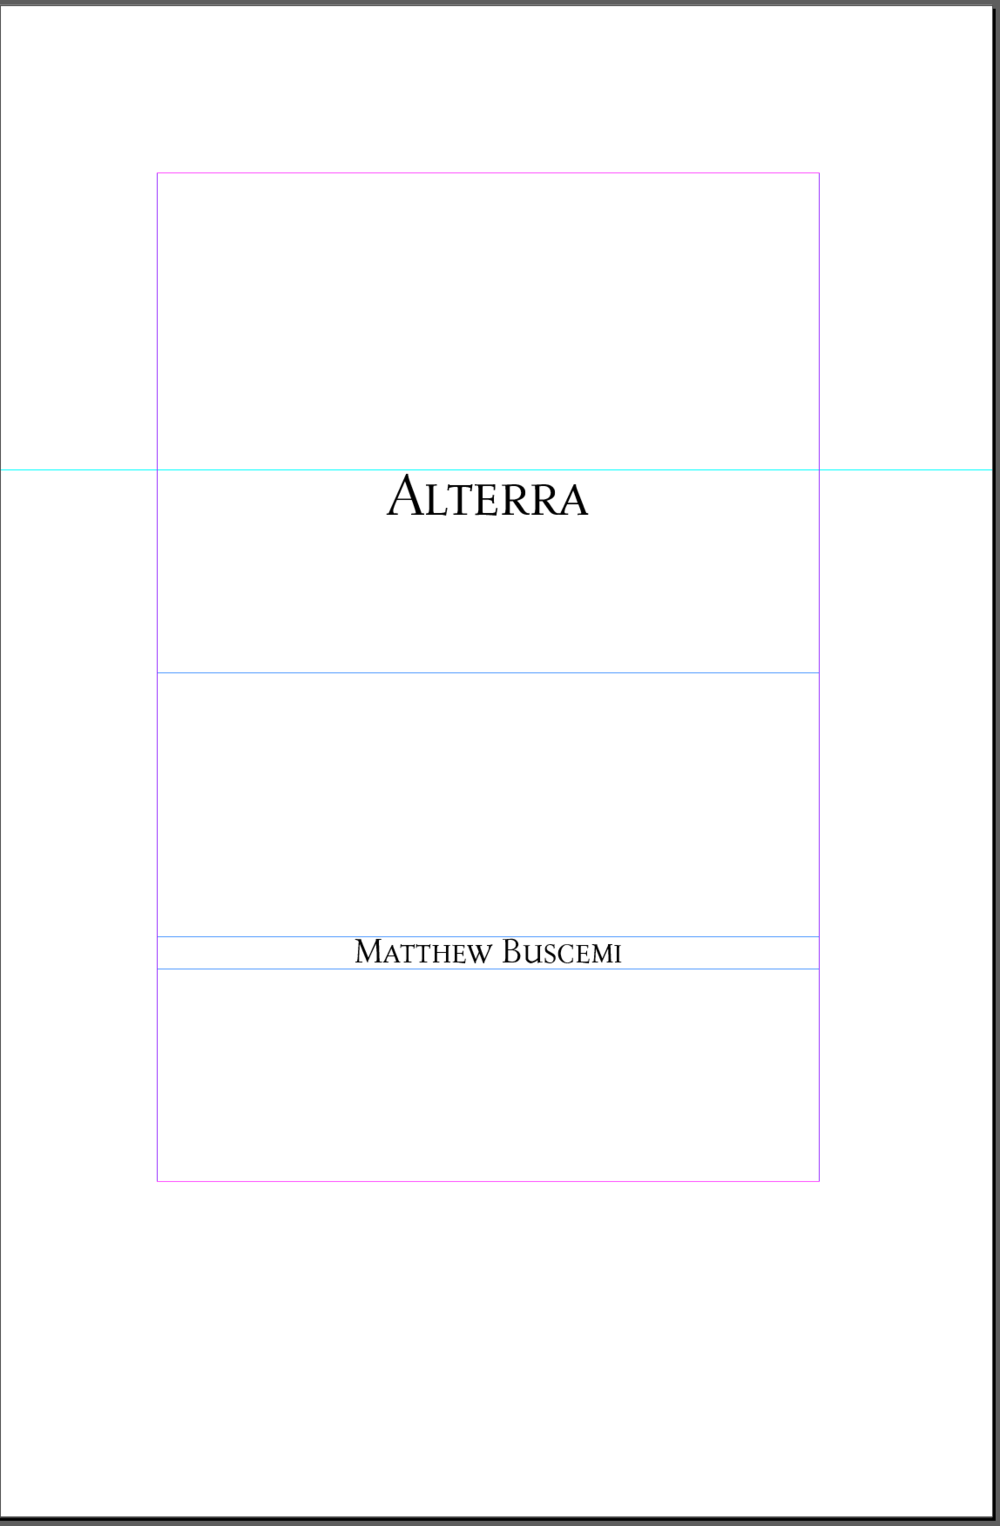 Alterra Title Page